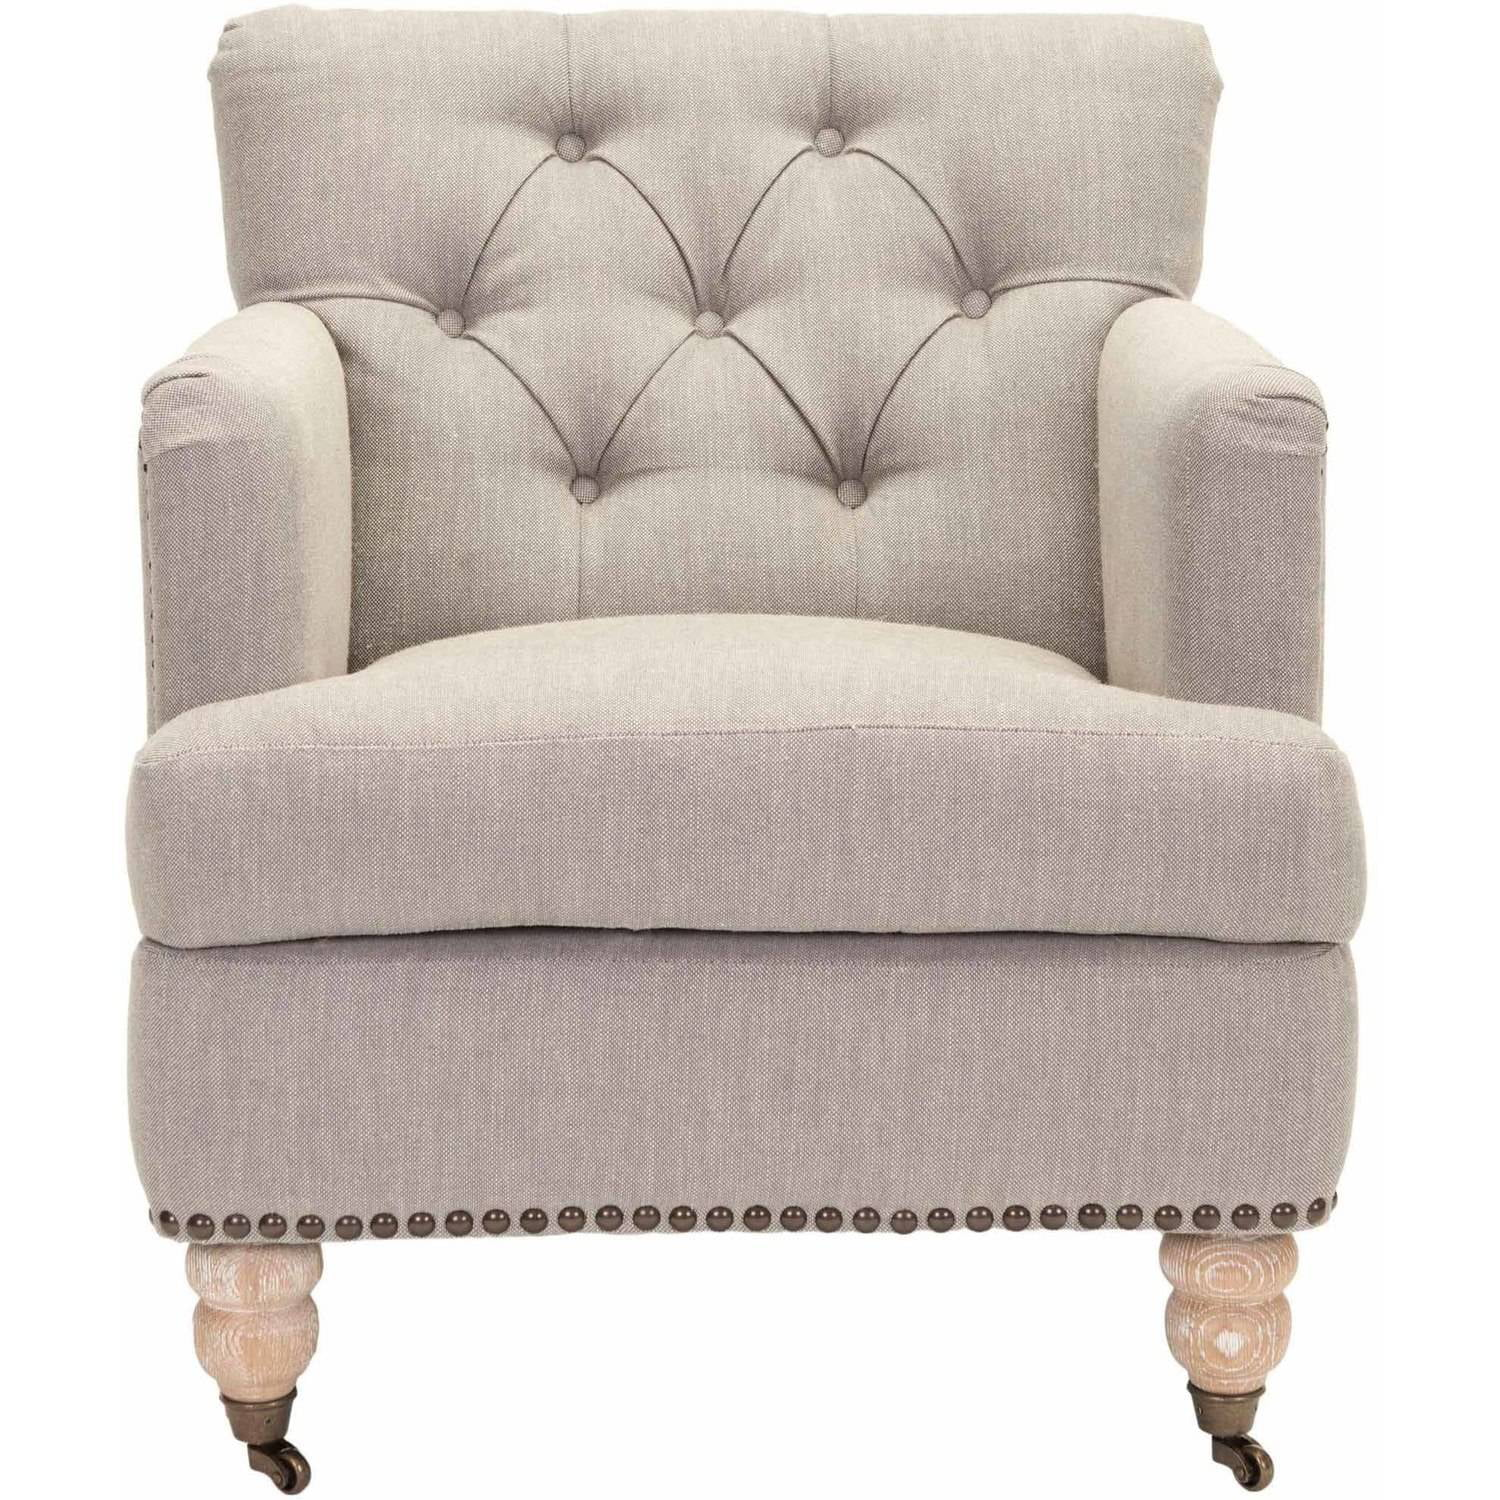 Safavieh Colin Tufted Club Chair Walmart